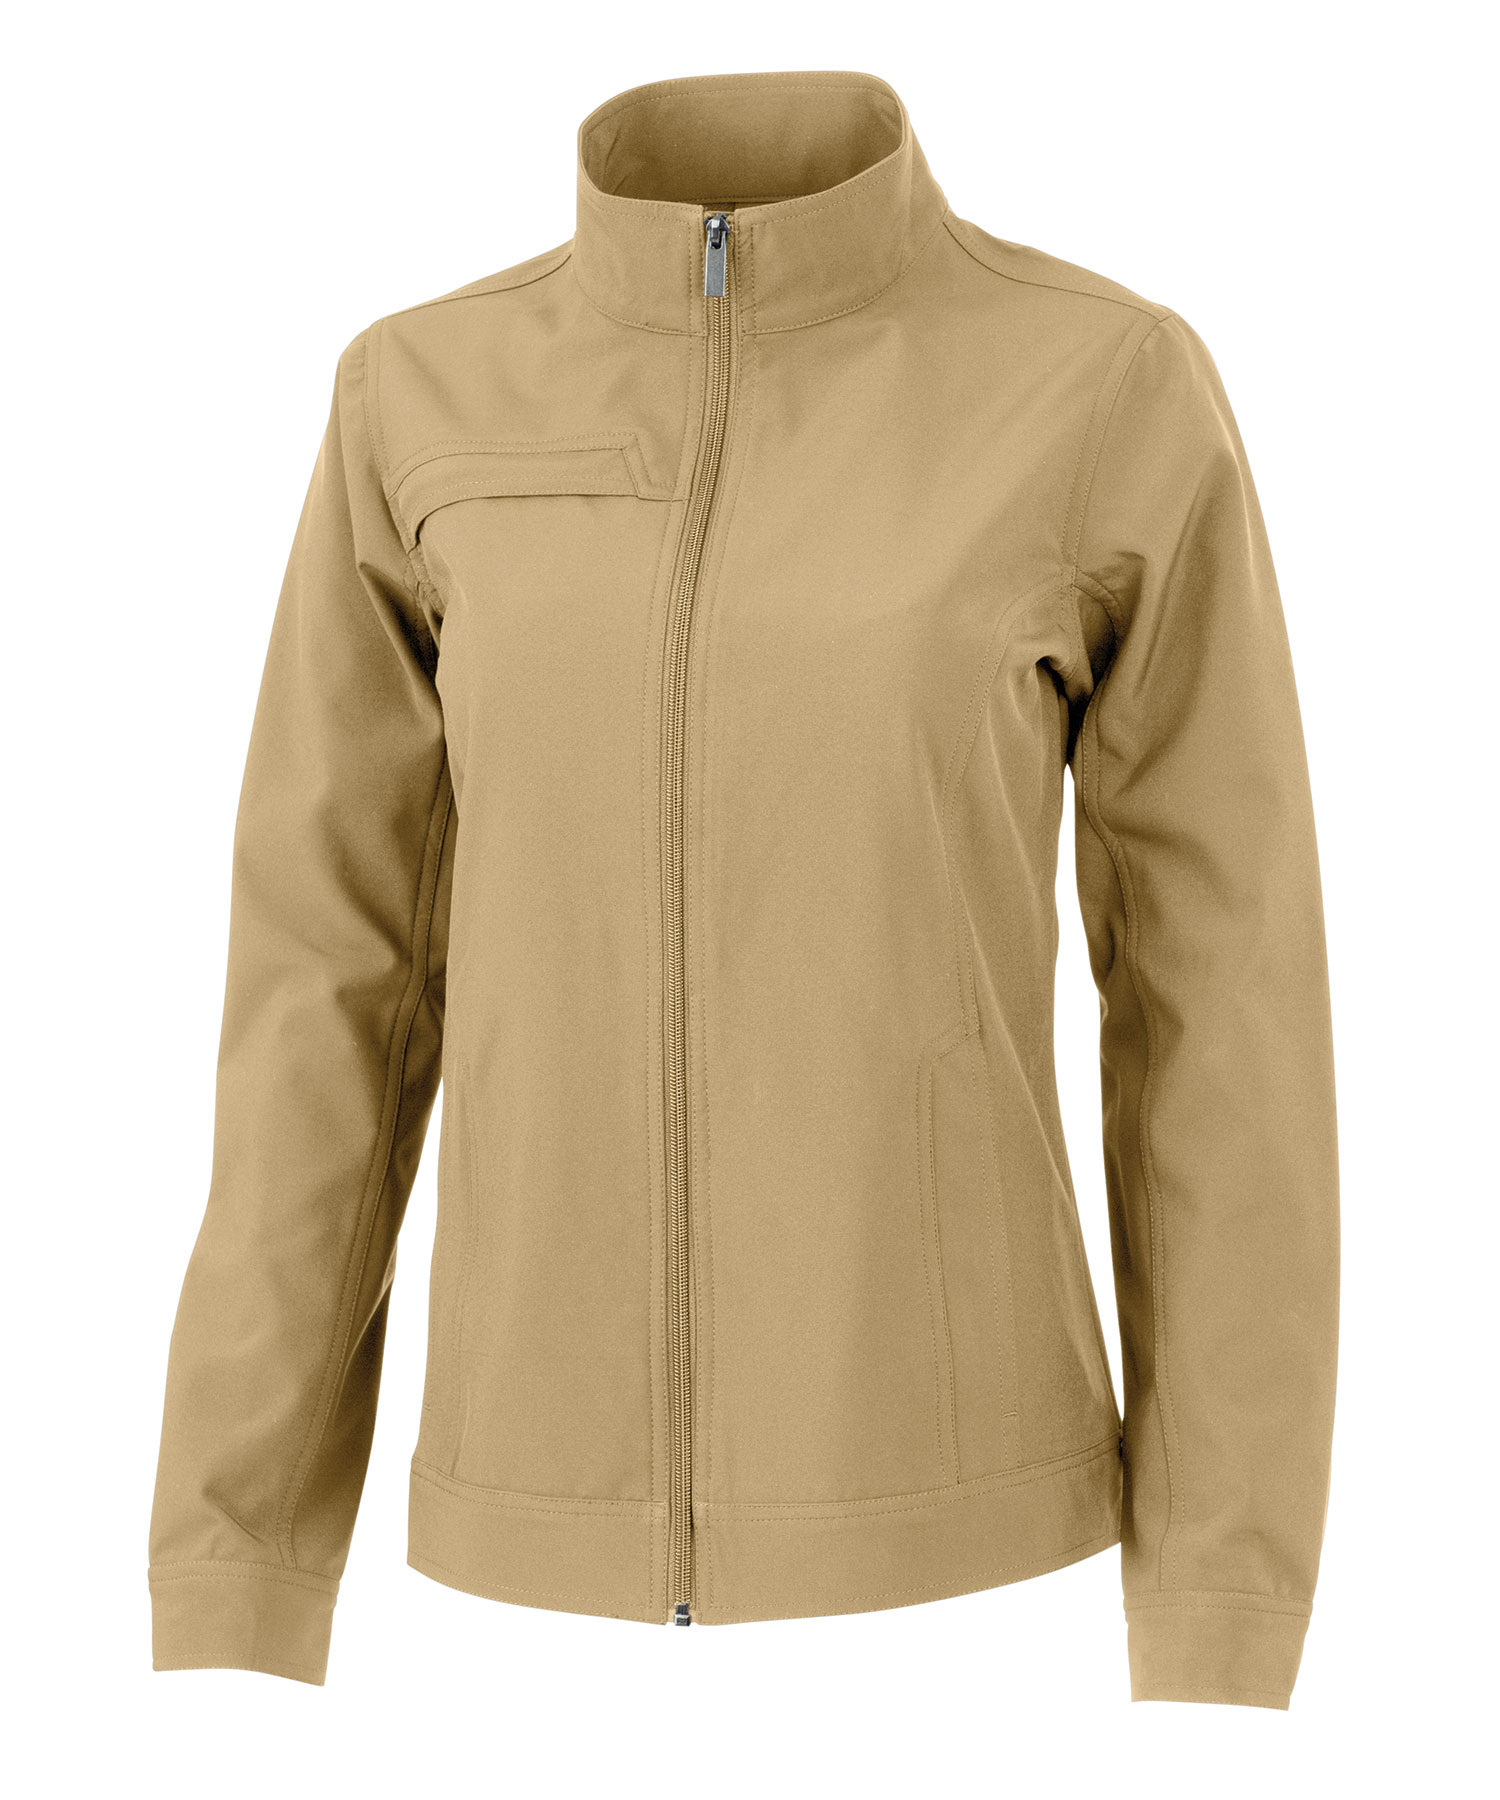 Charles River Womens Dockside Jacket